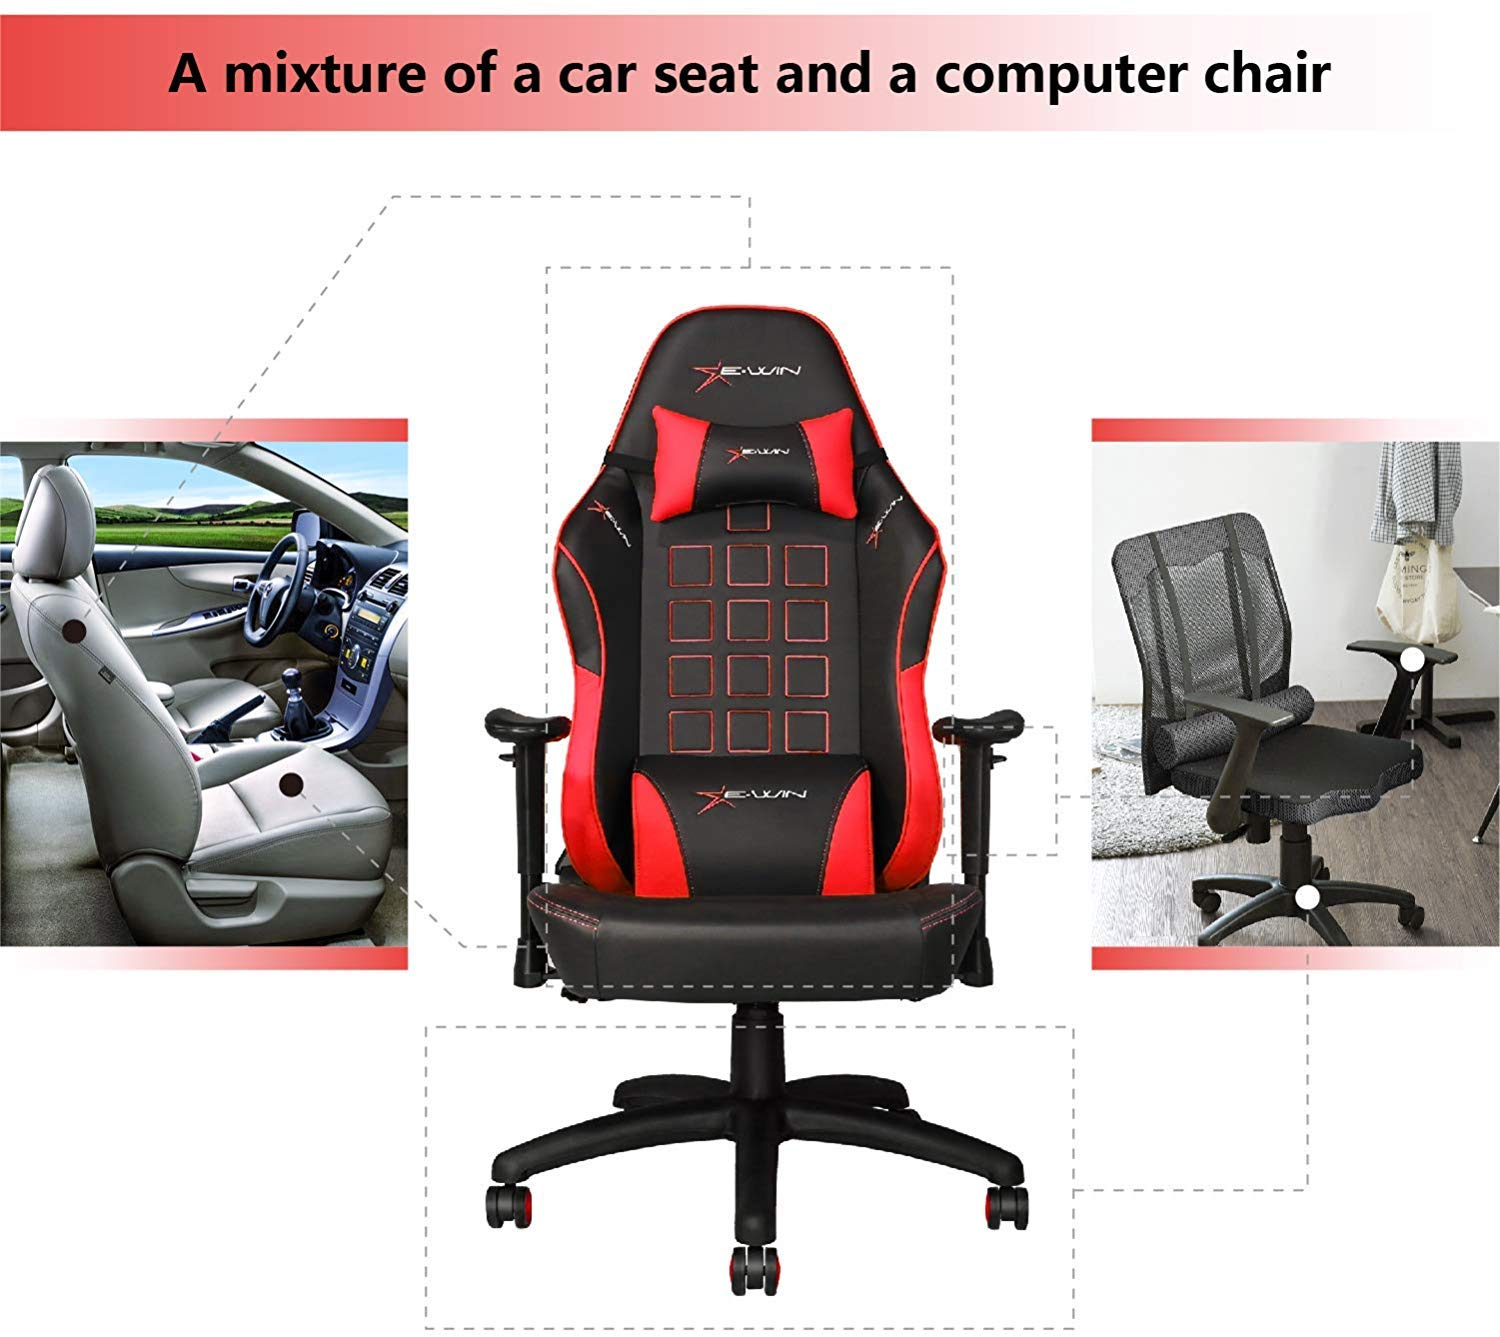 E-WIN Gaming 400 lb Big and Tall Office Chair Ergonomic Racing Style Design with Wide Seat High Back Adjustable Armrest Black Red